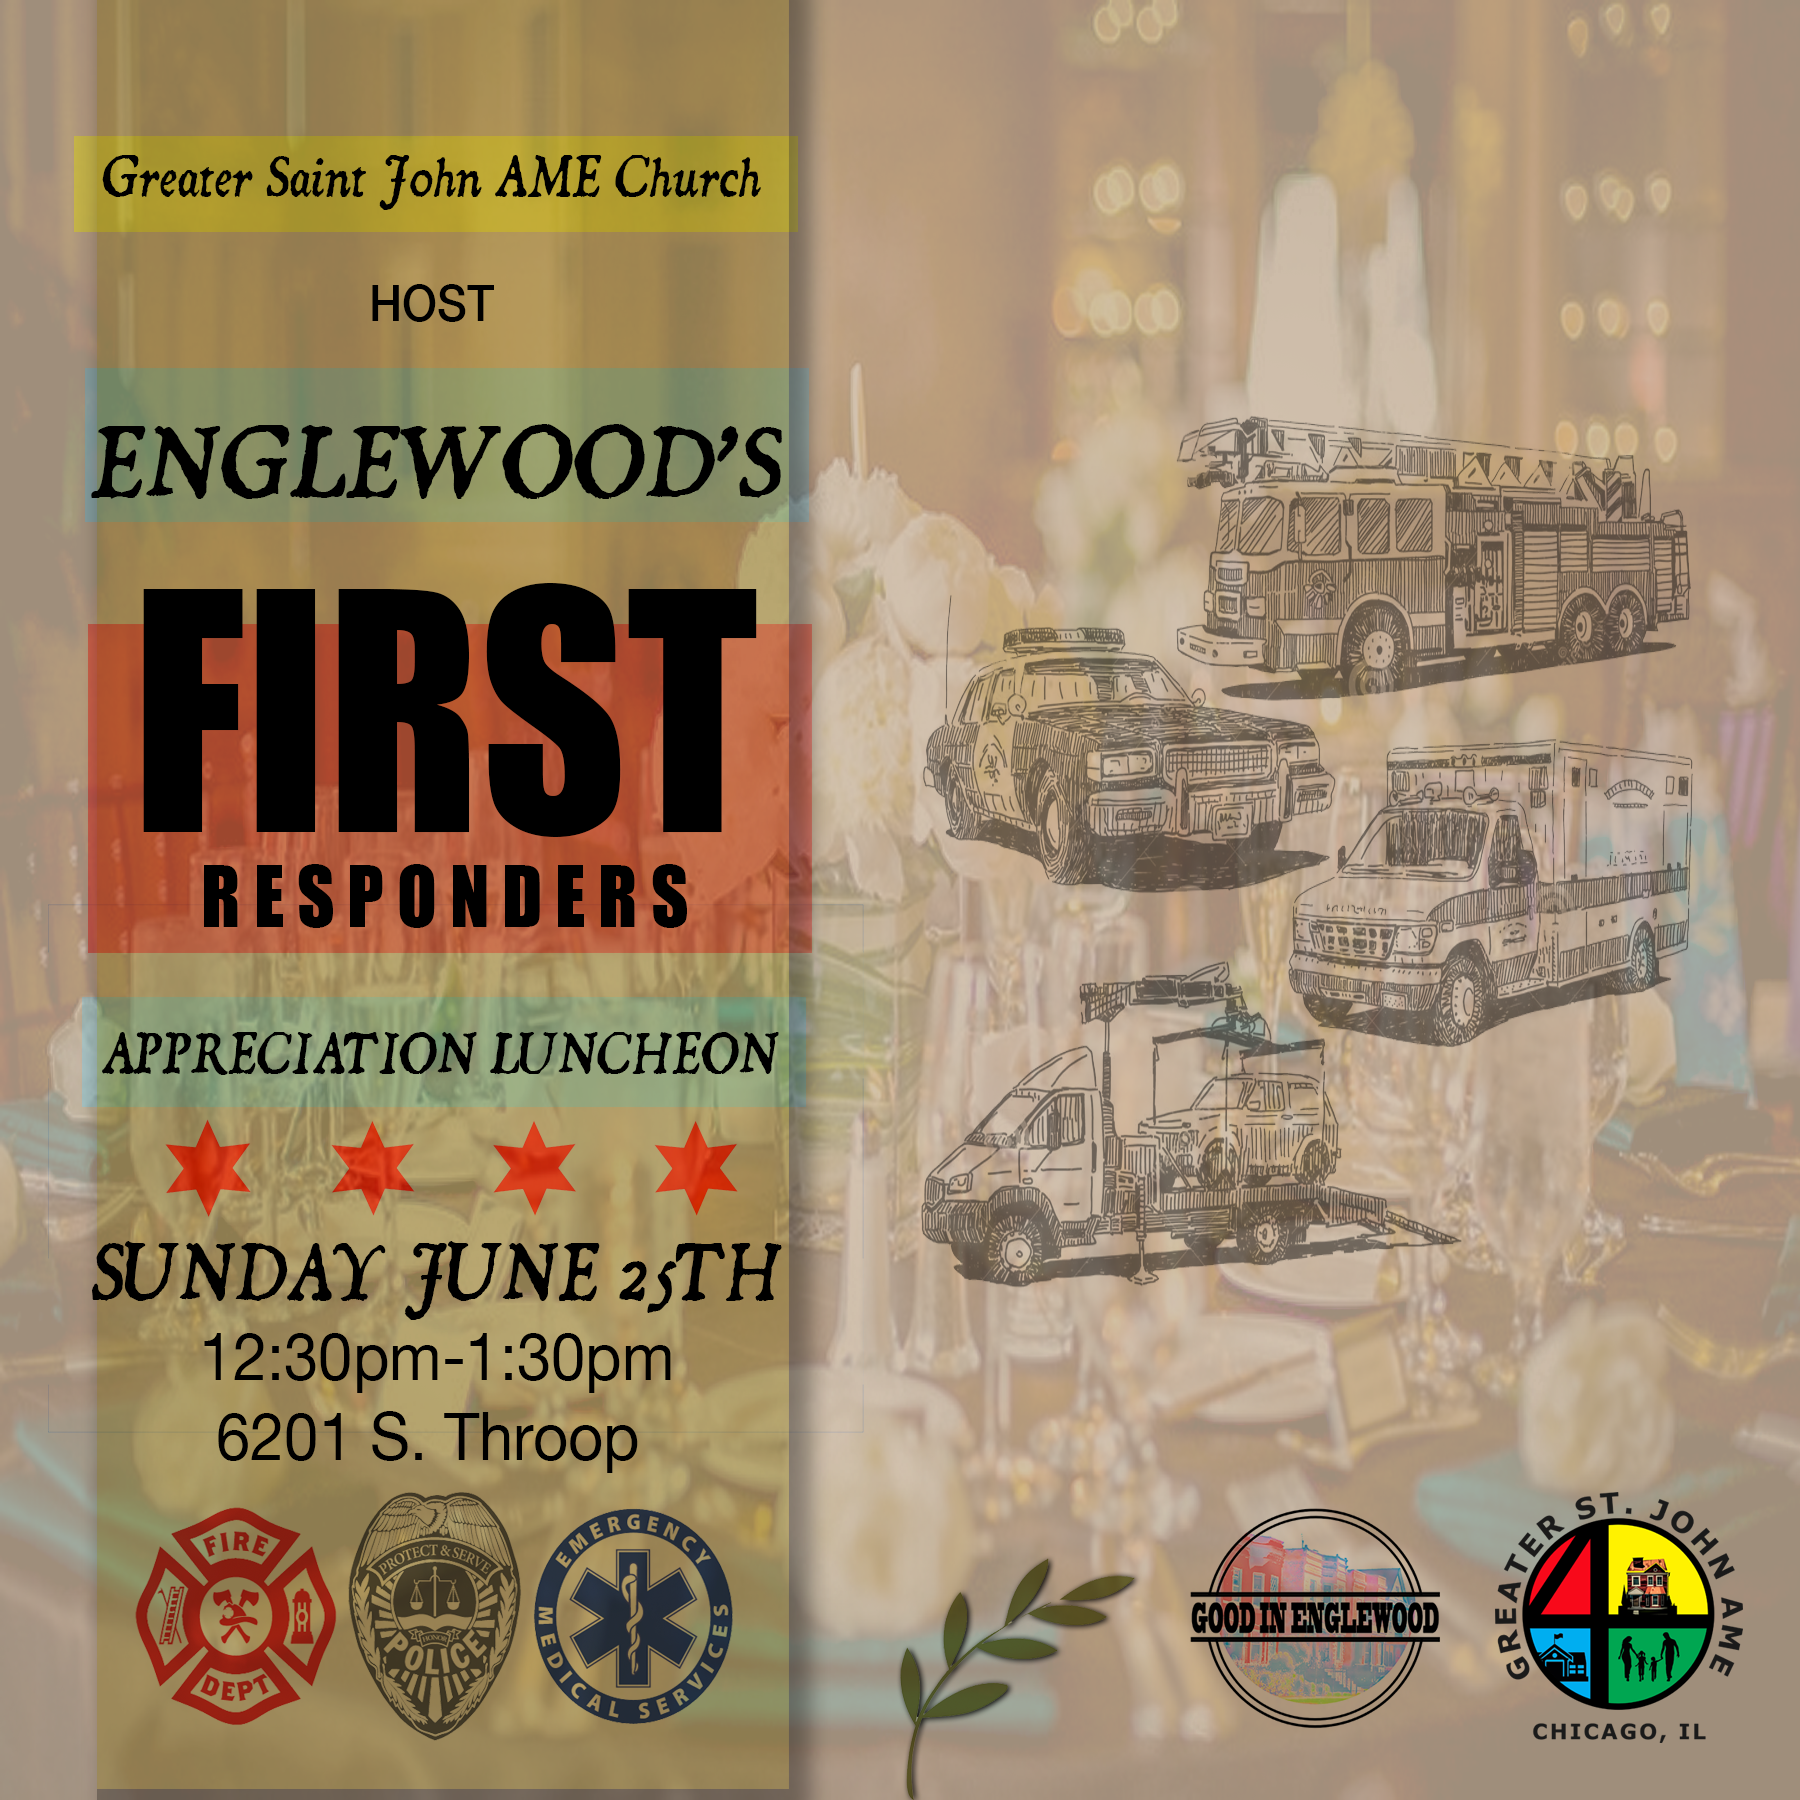 Englewood's First Responders Appreciation Luncheon